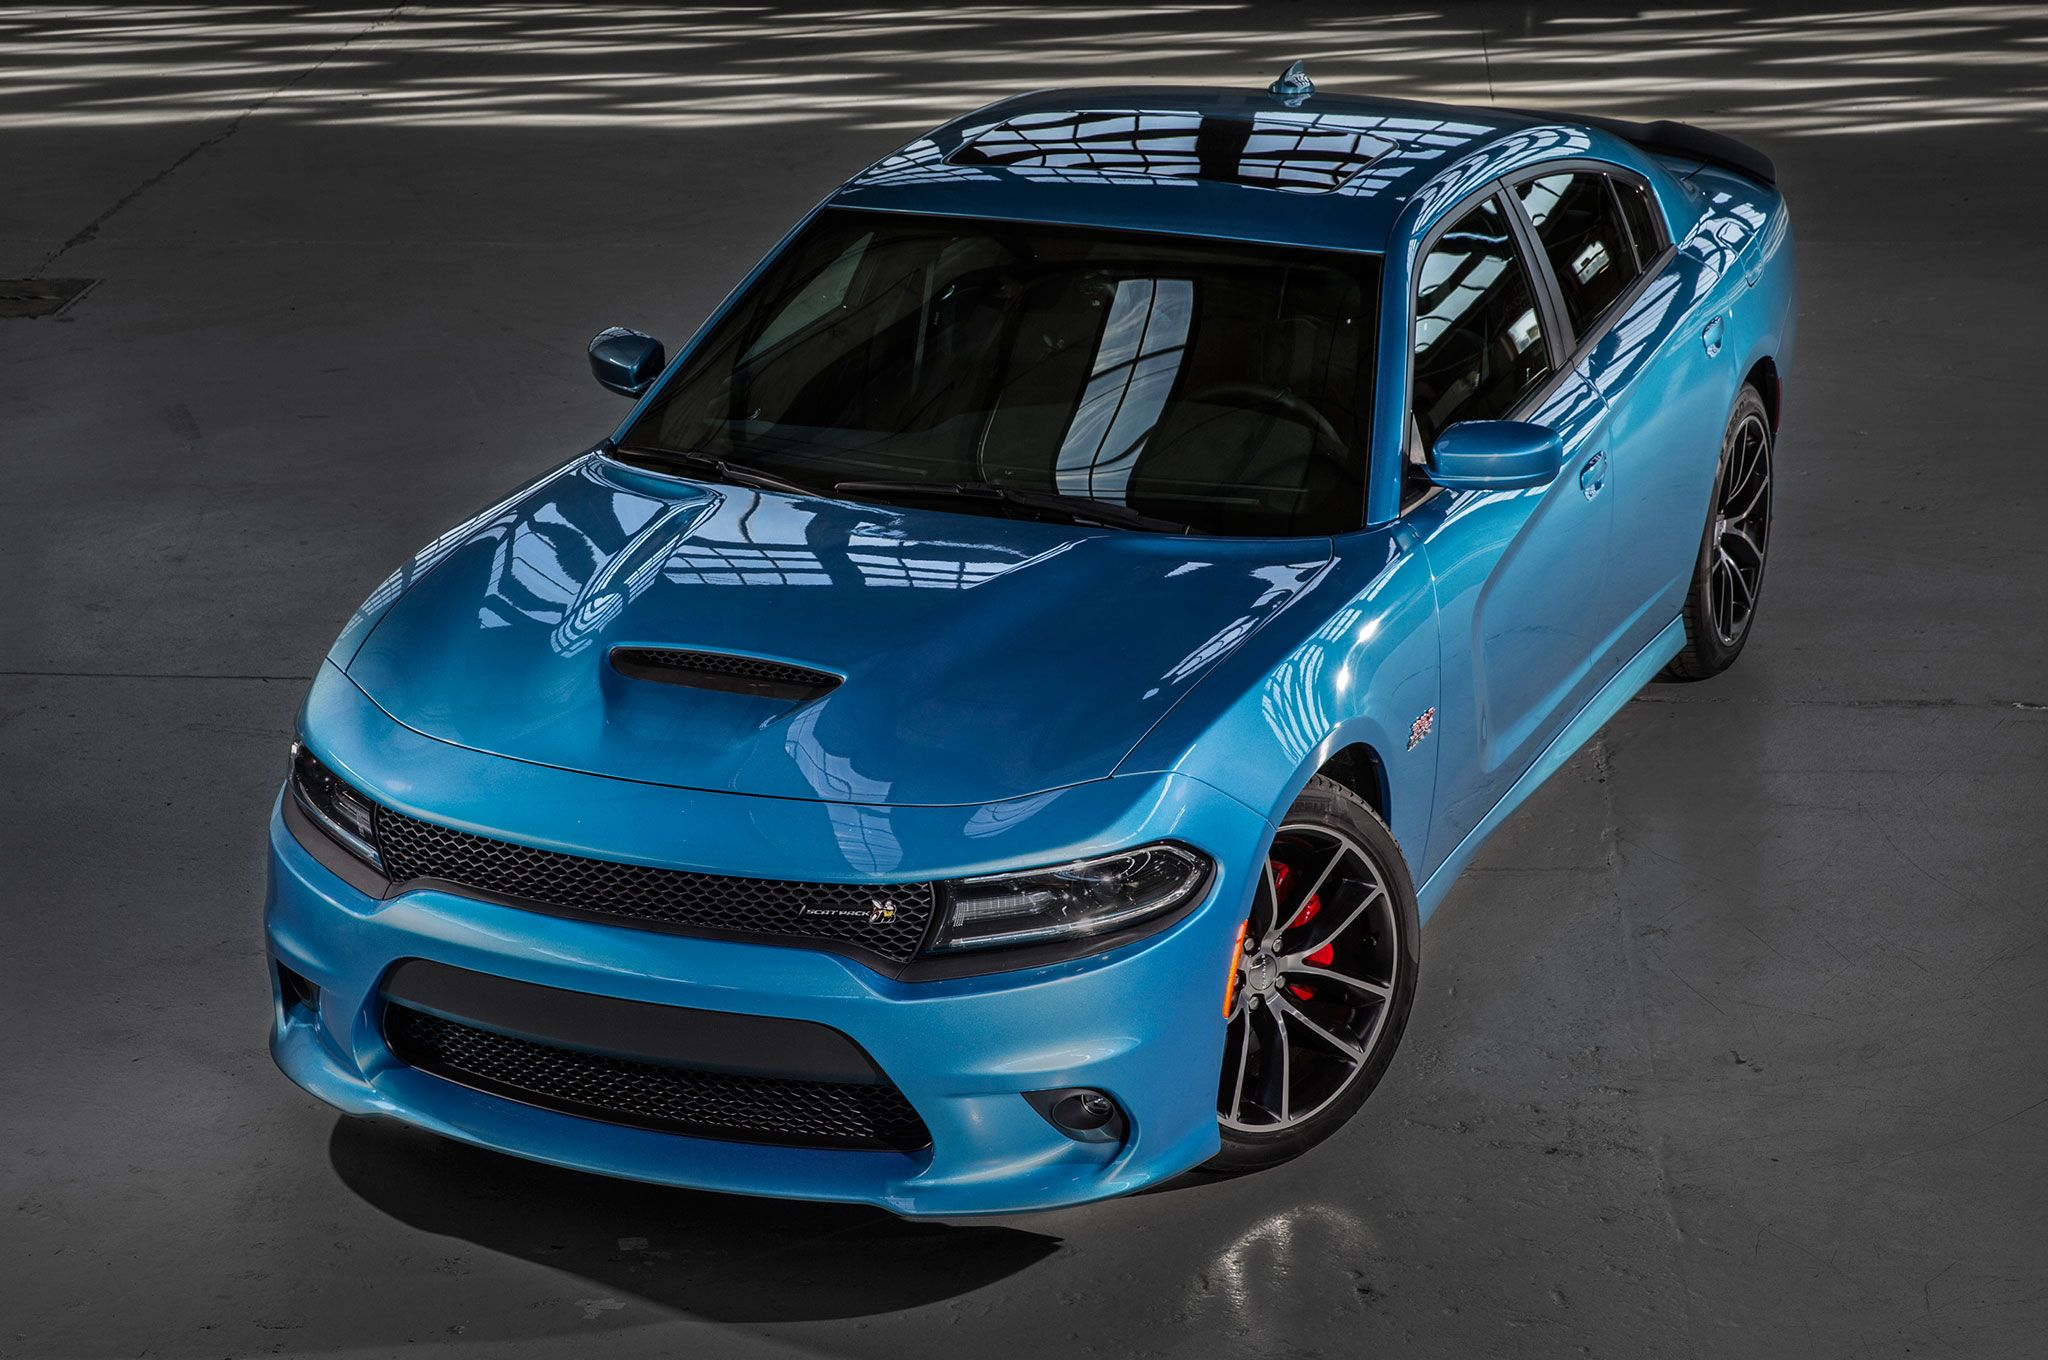 Dodge charger r t scat pack with an hemi engine that delivers best in class 485 horsepower 475 lb ft of torque and in the low range